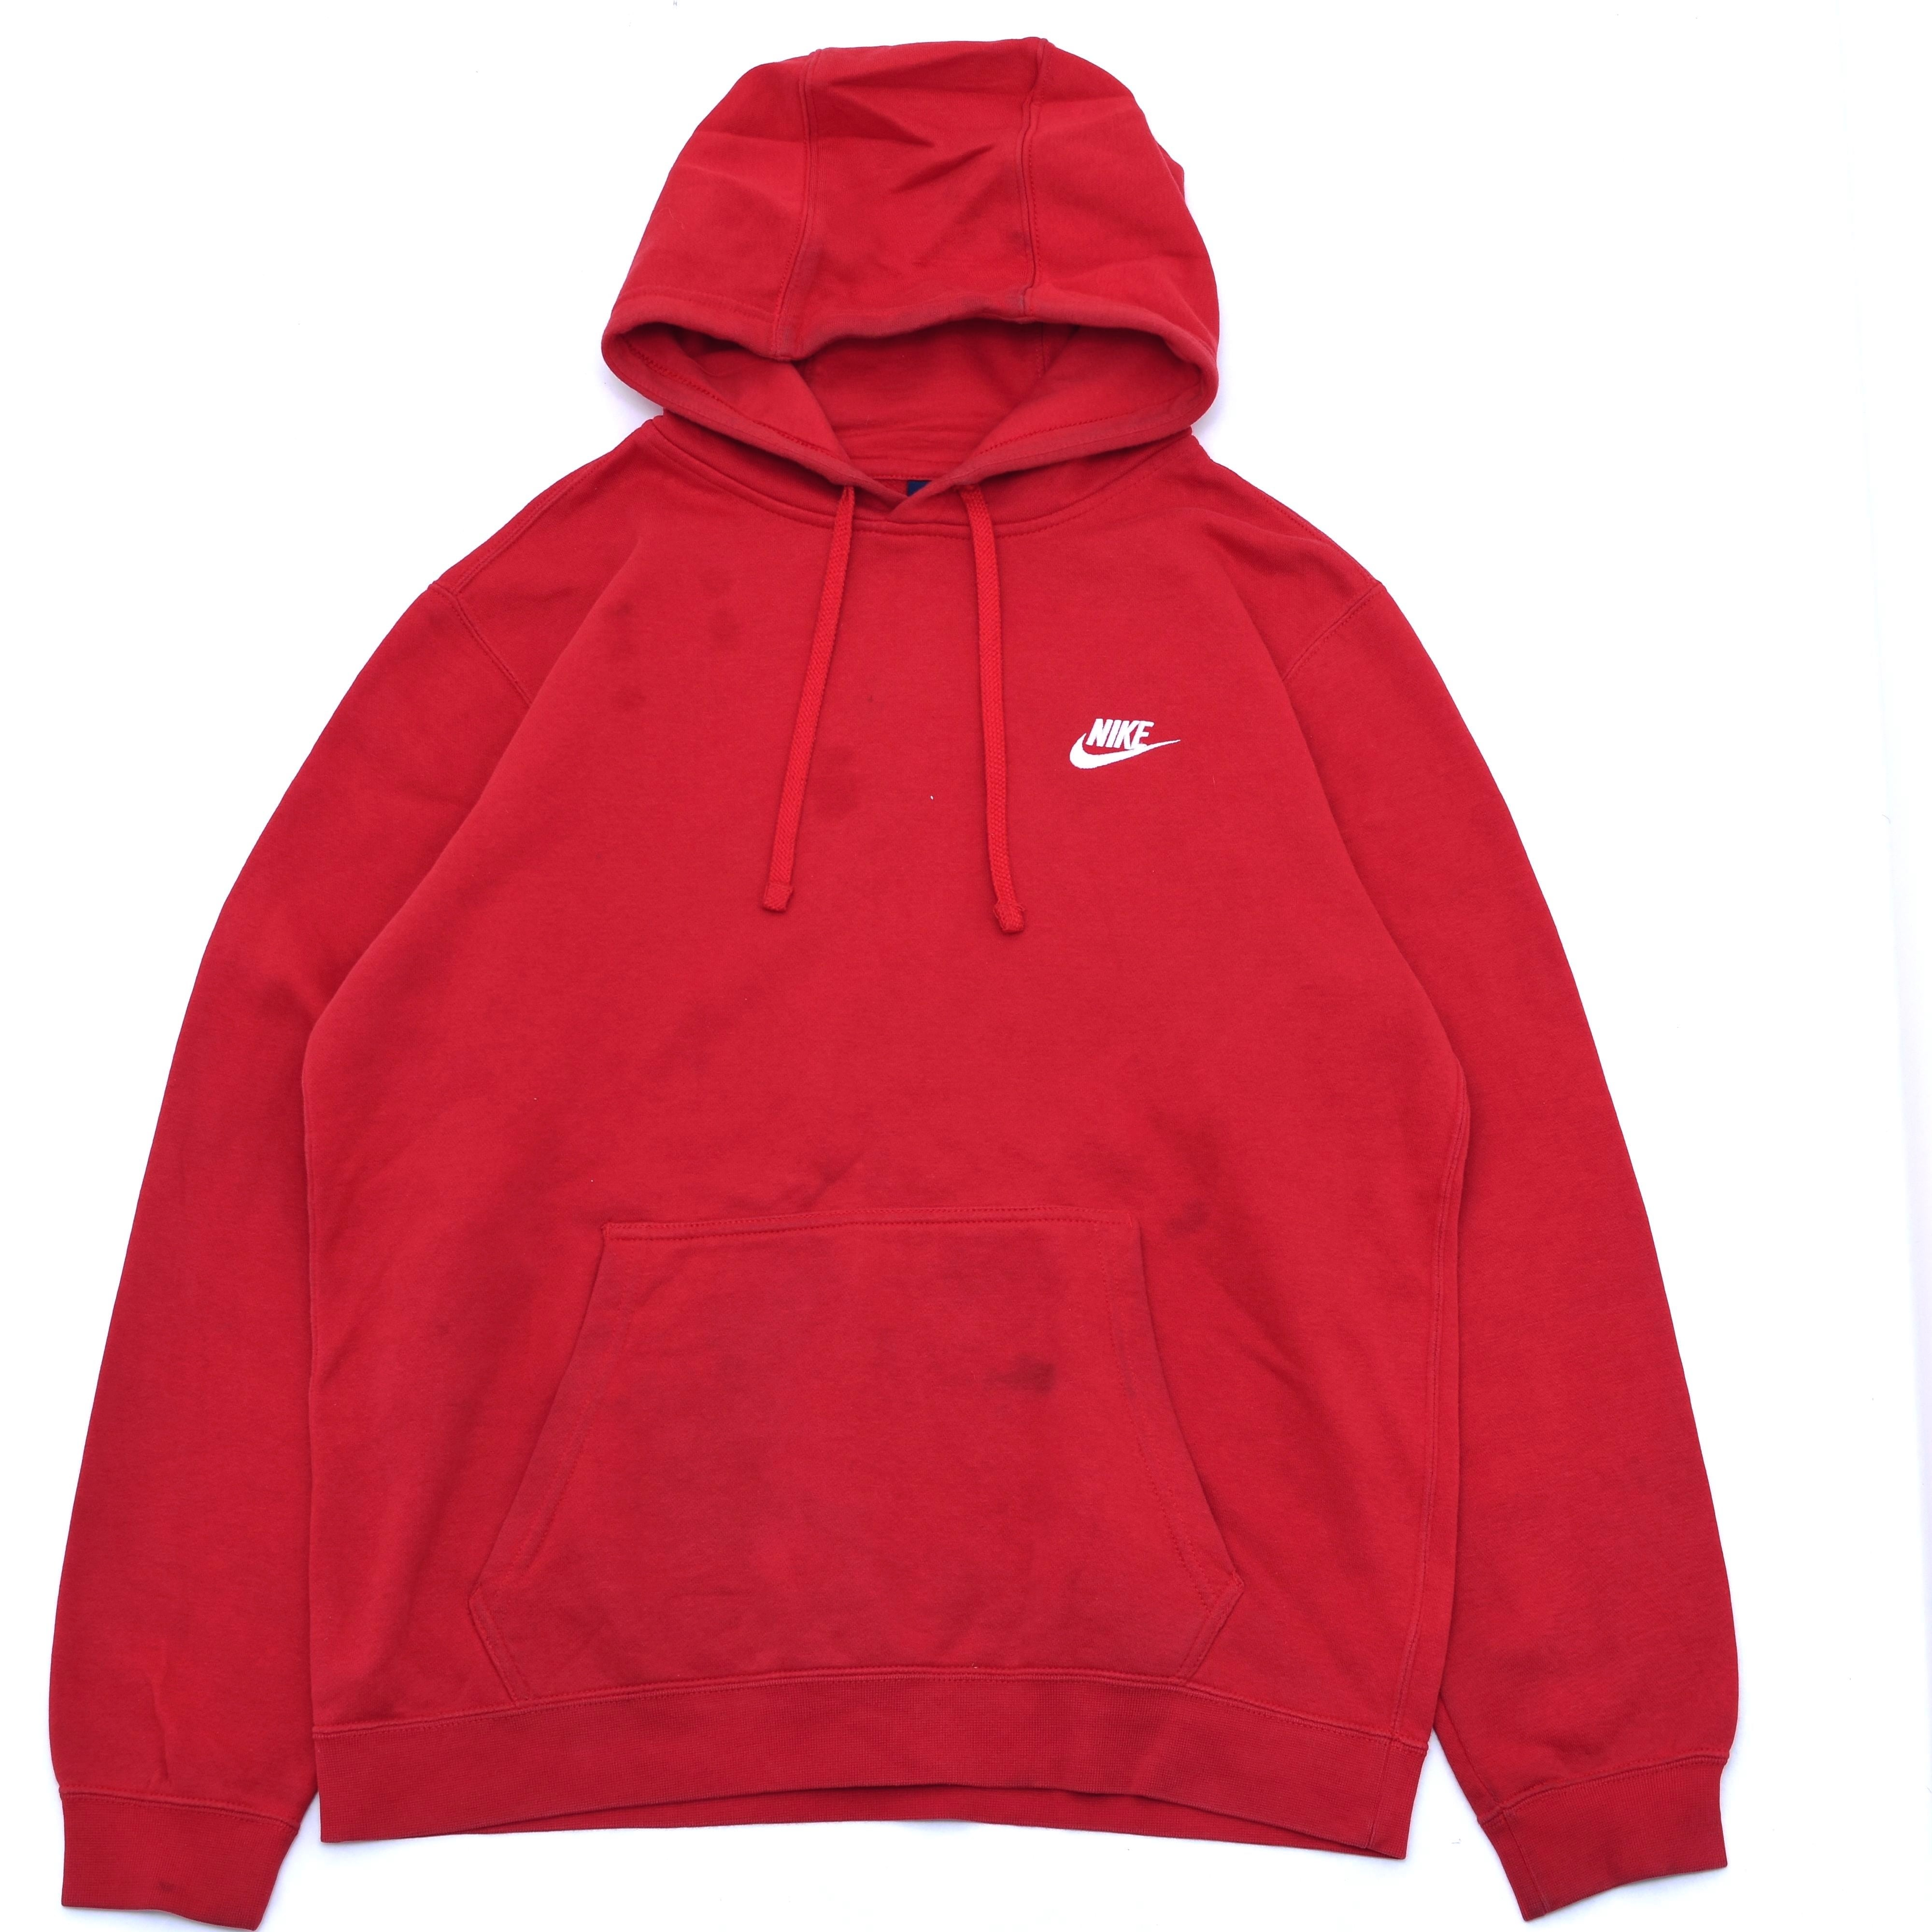 NIKE one point logo embroidery hoodie